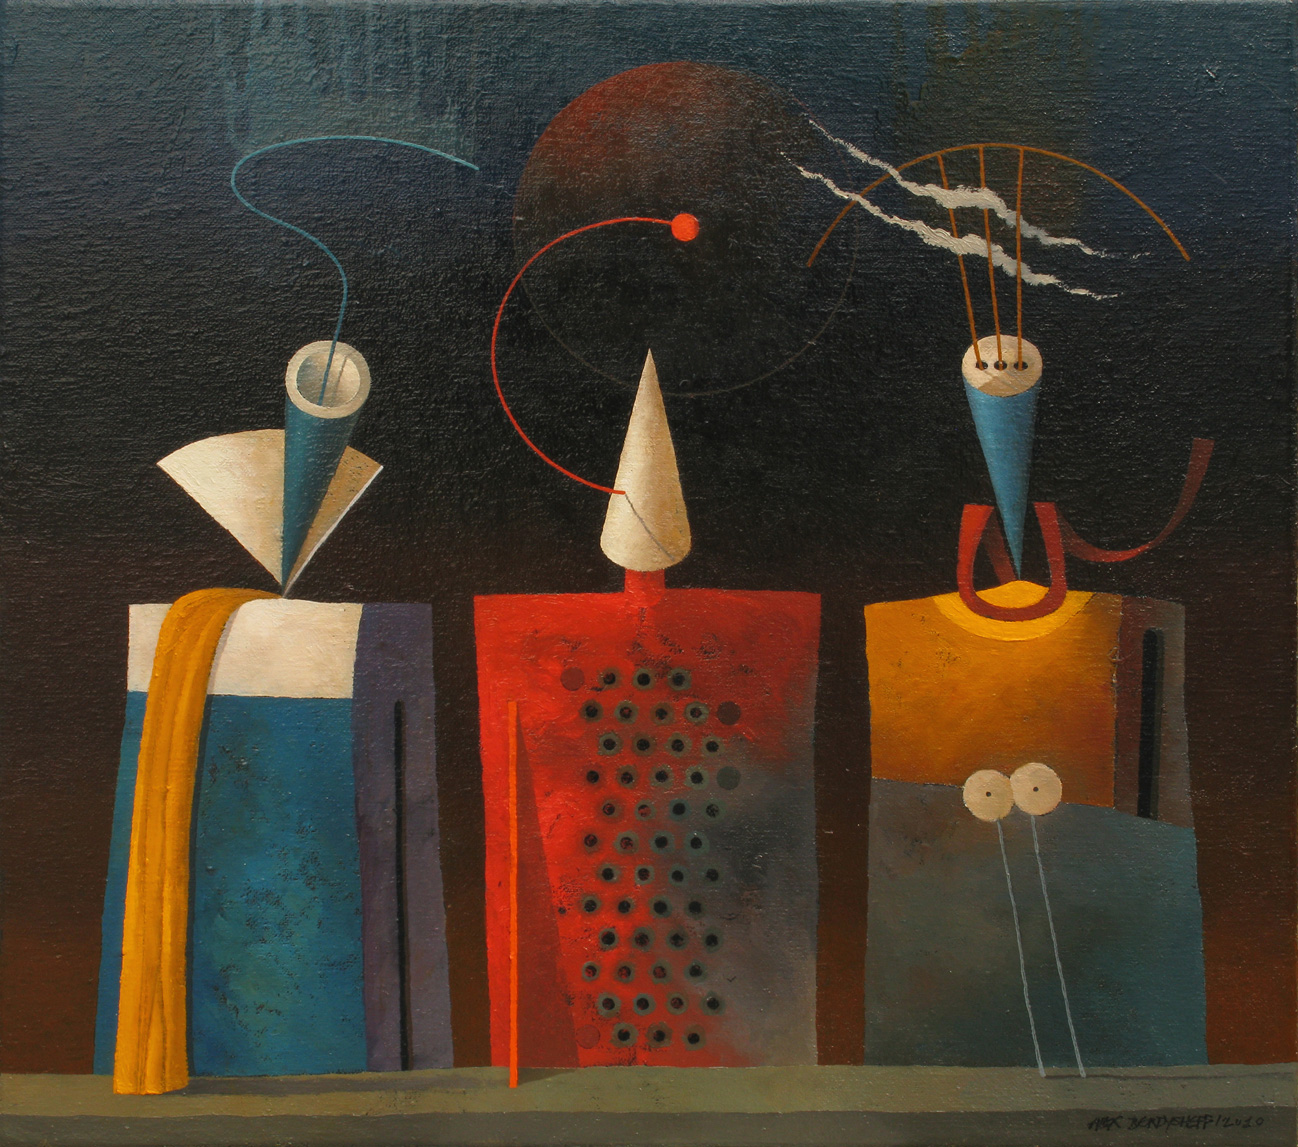 PROTOTYPES 234, OIL ON CANVAS, 55X60CM, 2010